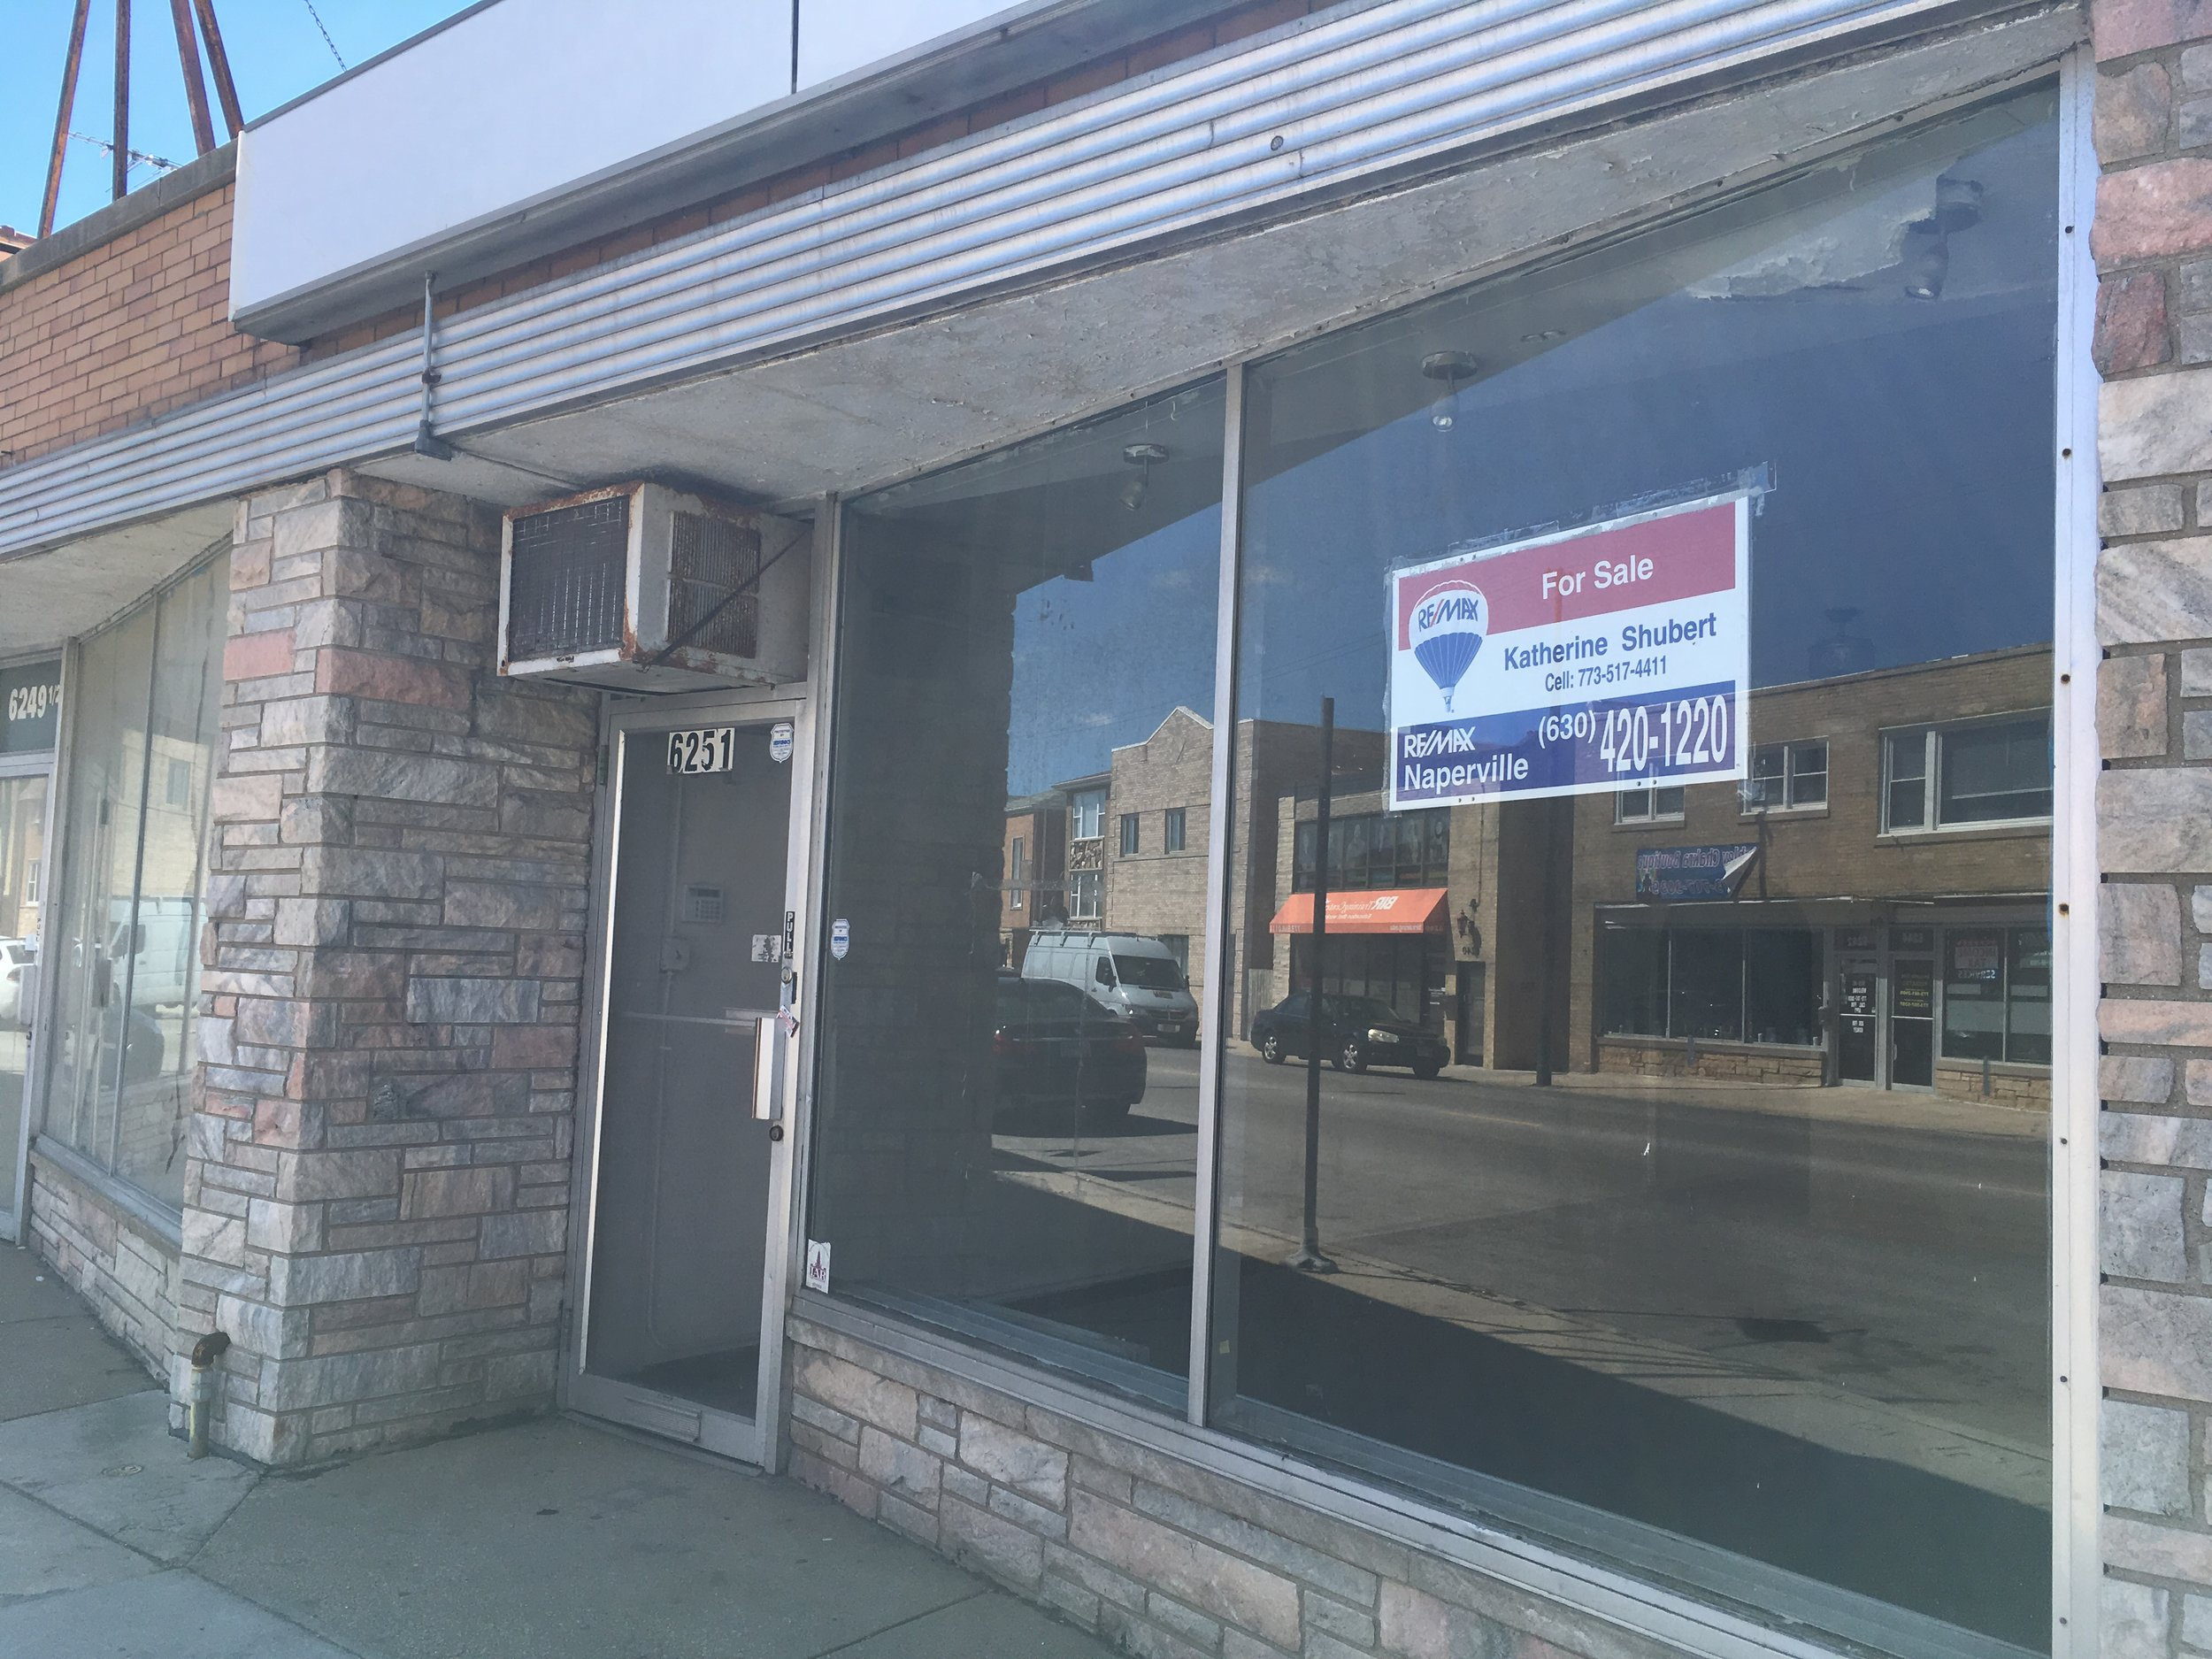 6251 W. Belmont Ave.    Call  630-420-1220